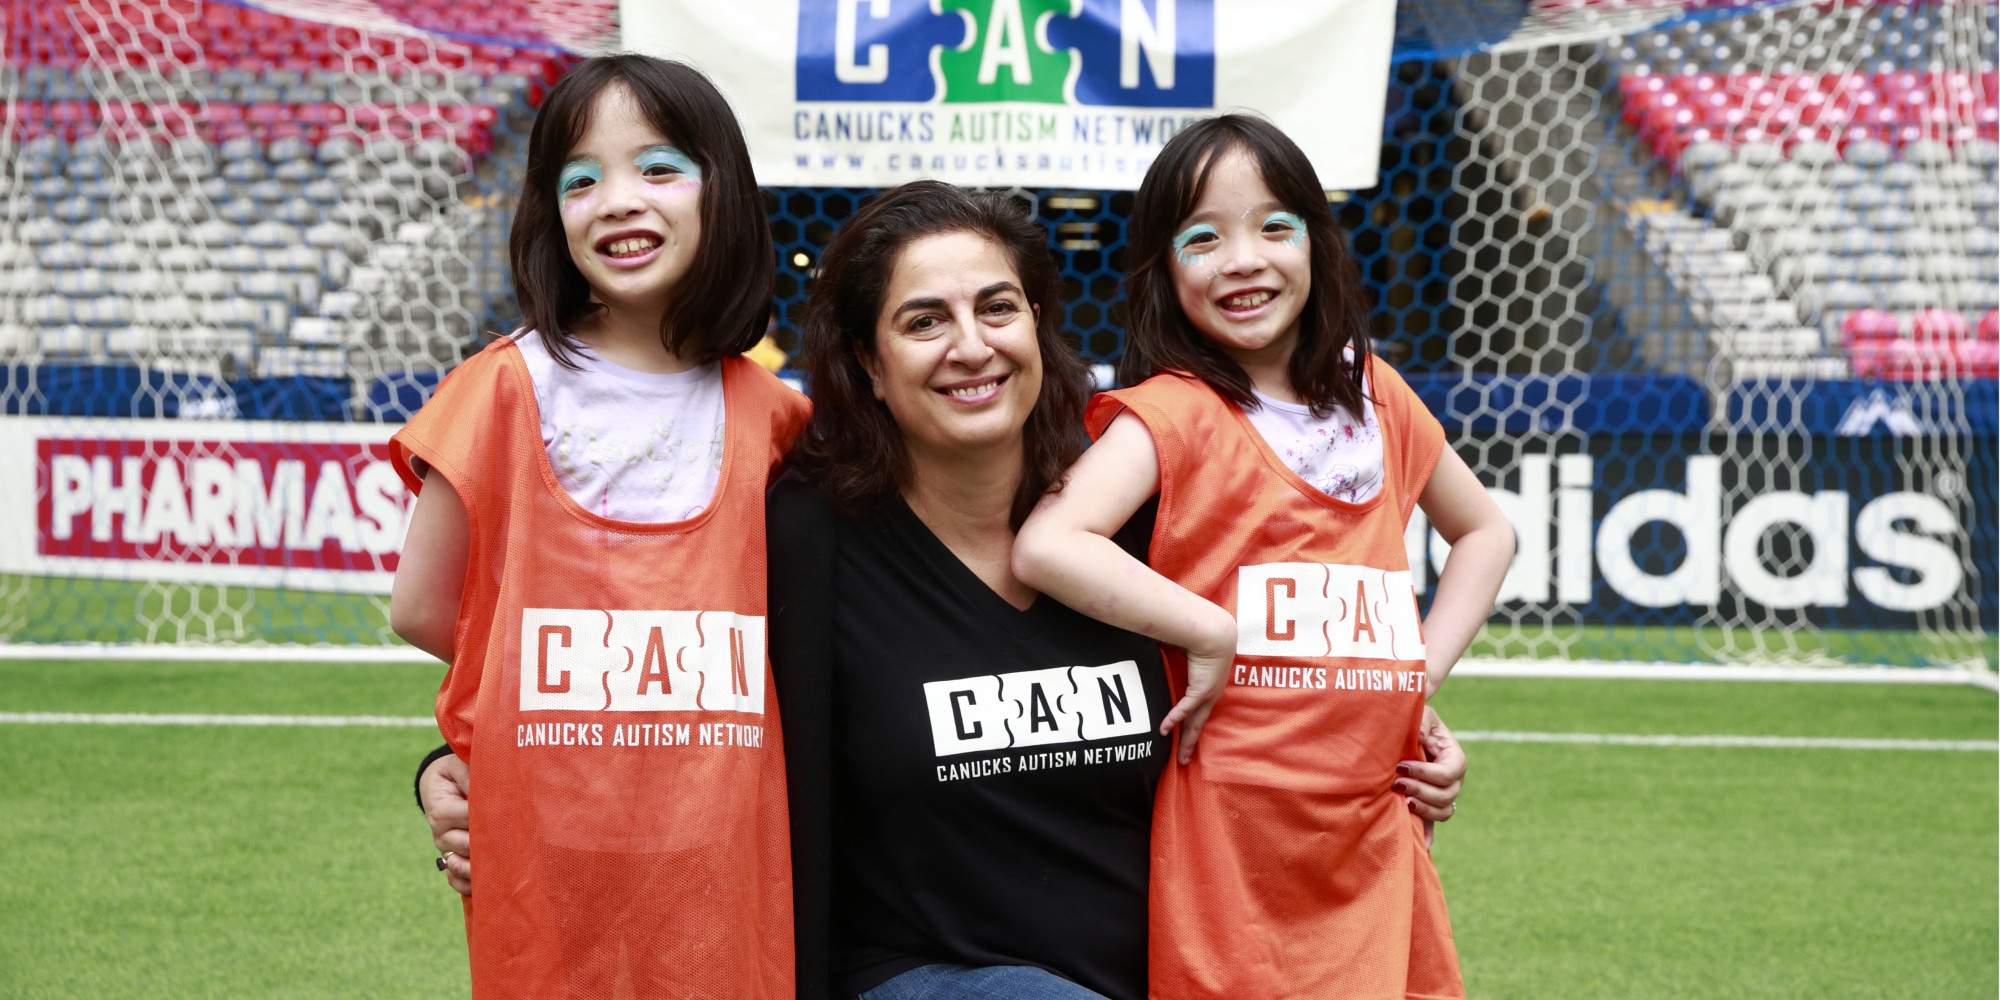 A woman with two twin girls poses for a photo.